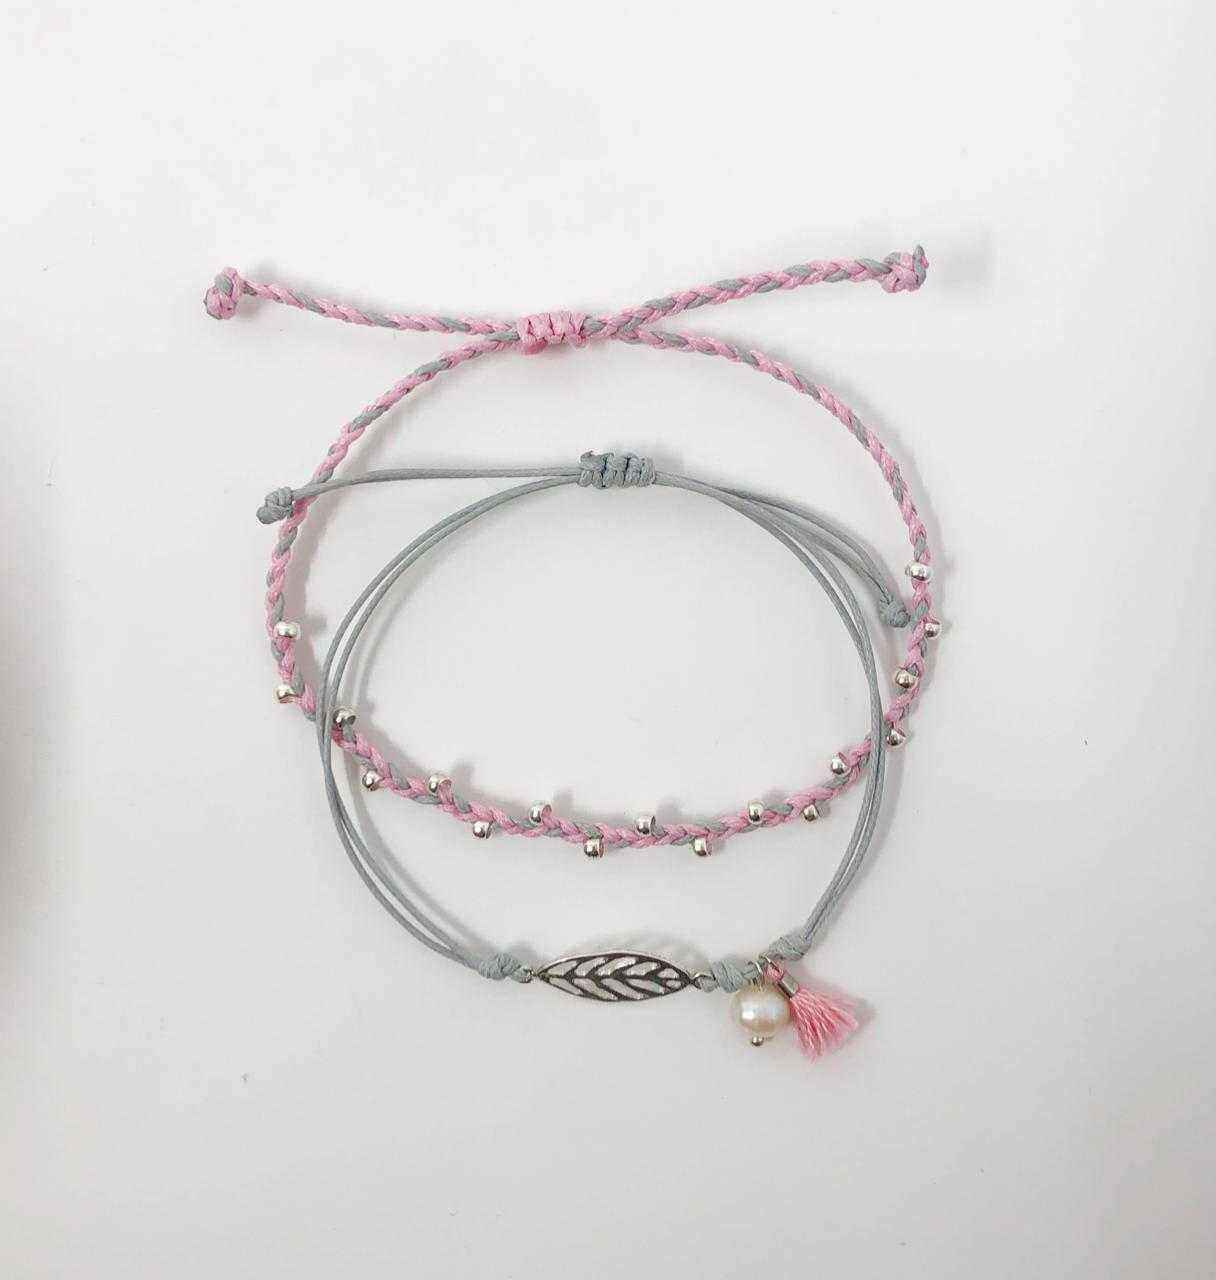 Pink and Grey Inspire Me Latin America Signature Bracelet Set by Zila | Inspire Me Latin America